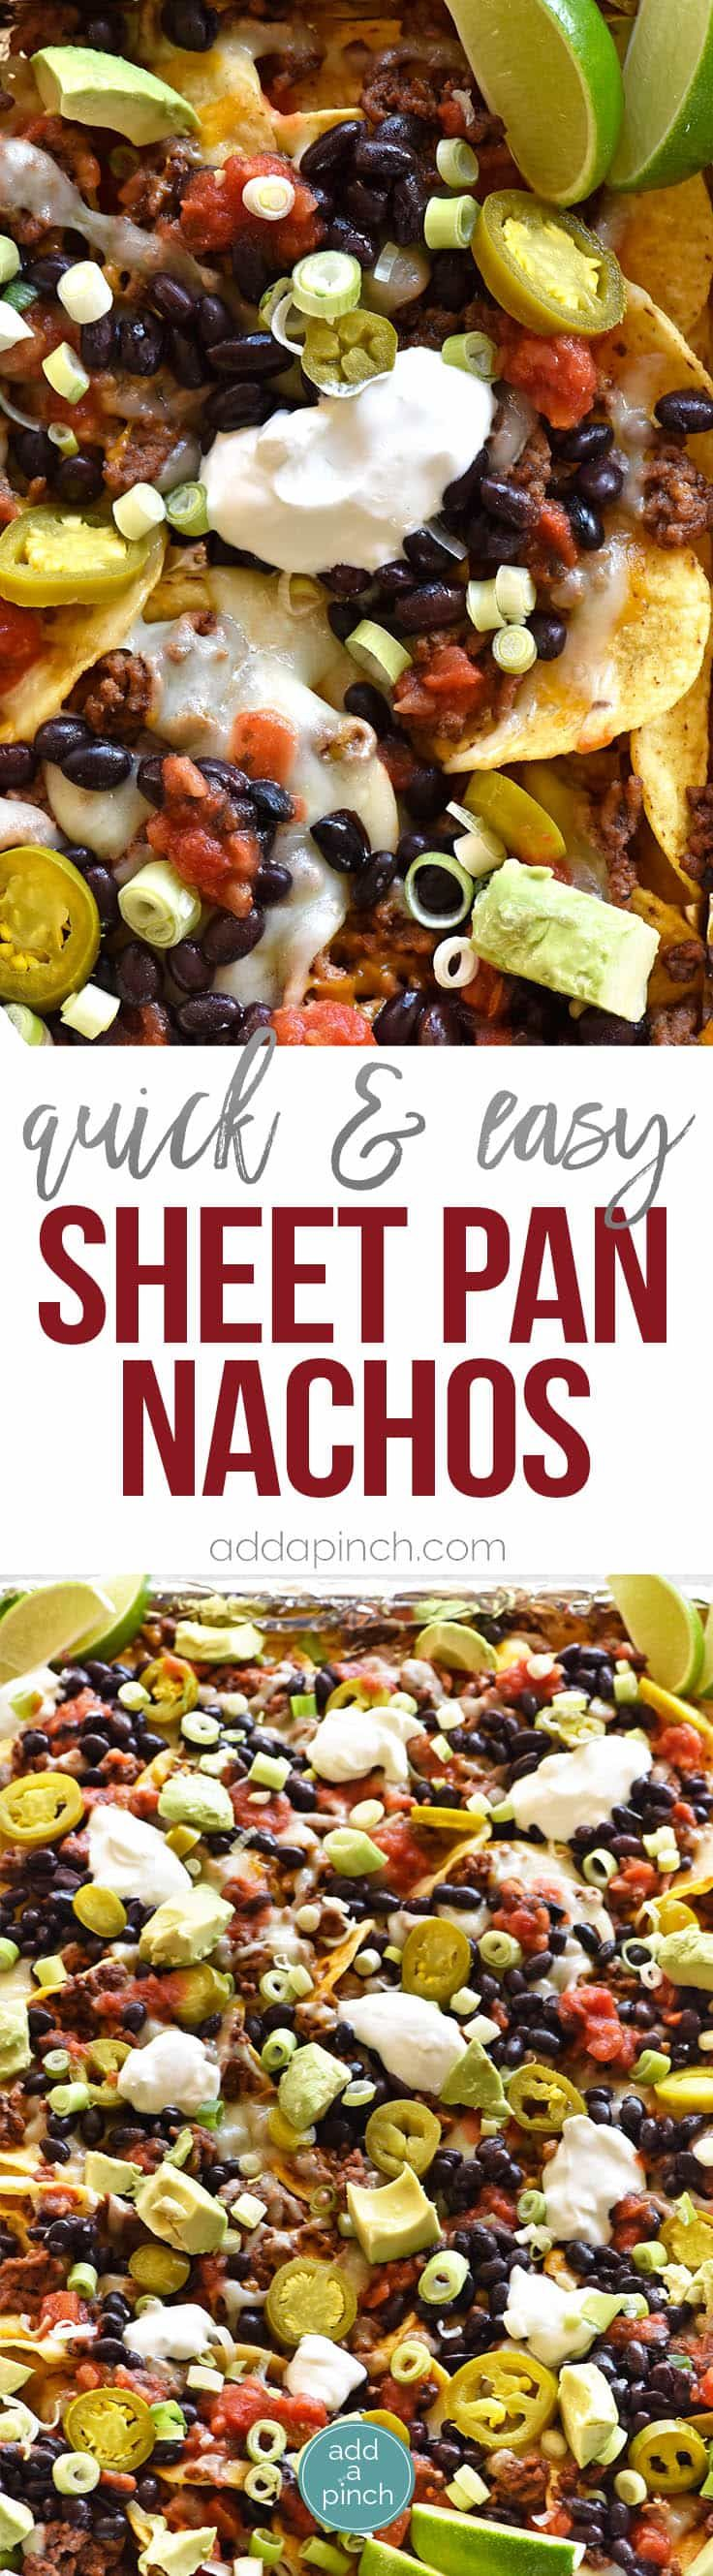 Sheet Pan Nachos Recipe - Sheet Pan Nachos make a quick and easy appetizer for a crowd or easy weeknight supper! These nachos are always a favorite! // addapinch.com